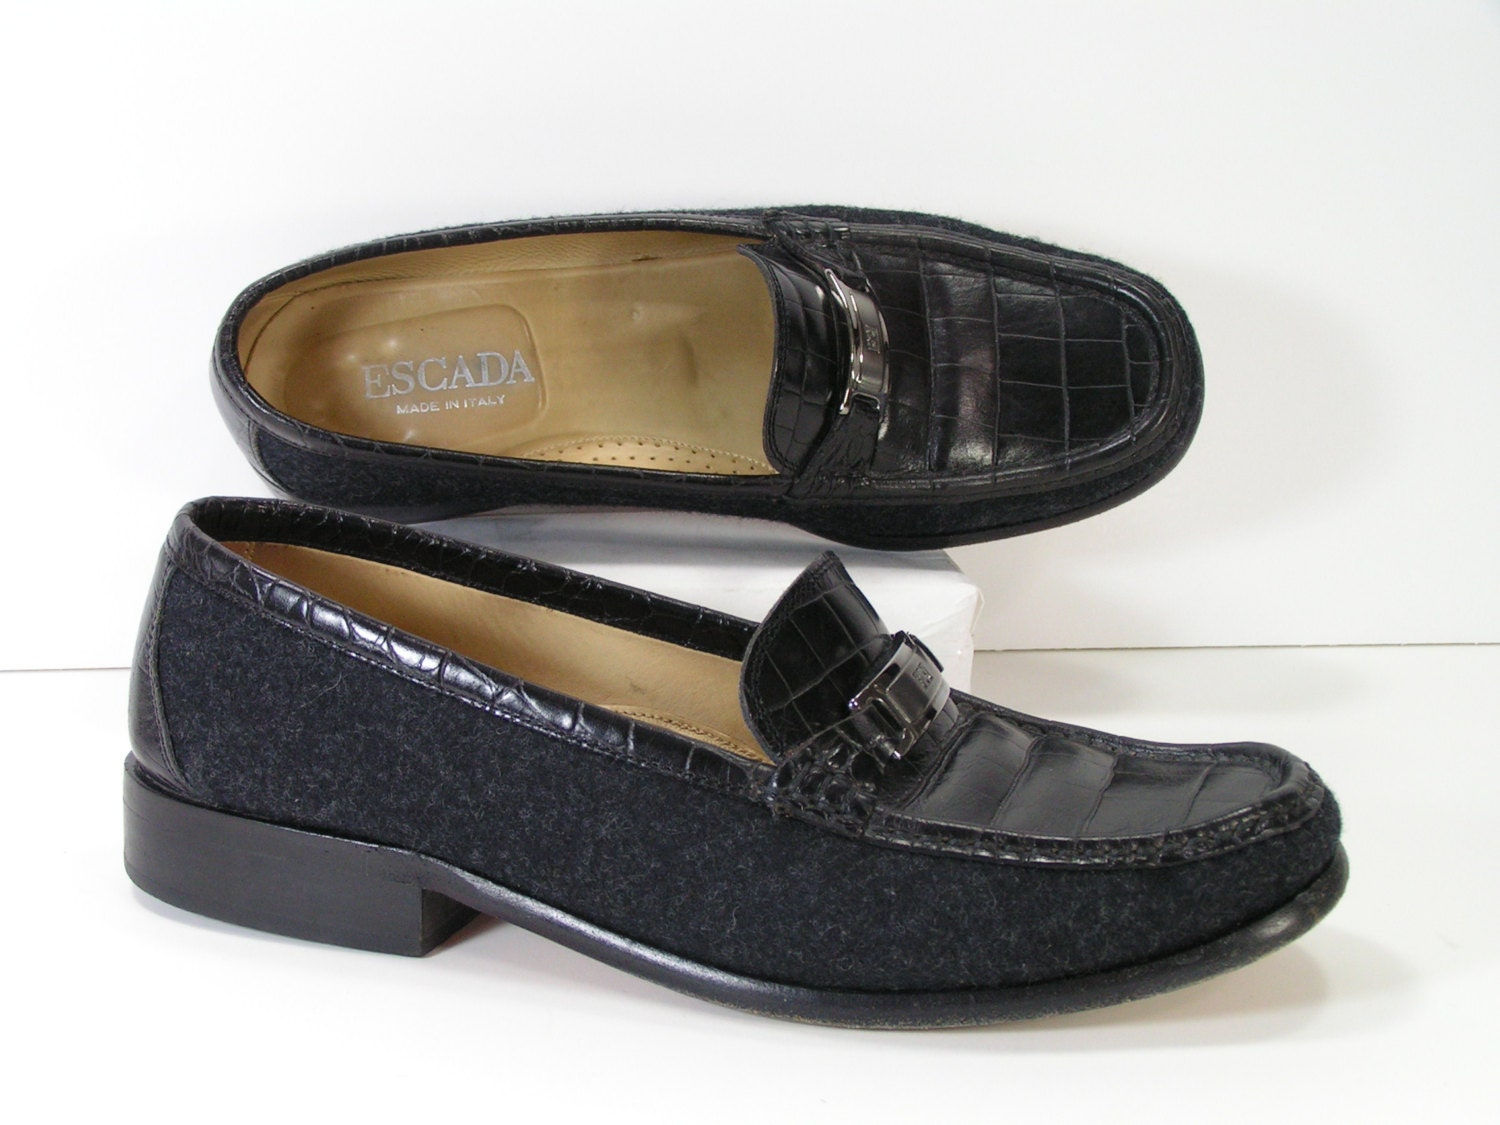 escada black dress shoes womens 7 m b loafers moccasins embossed